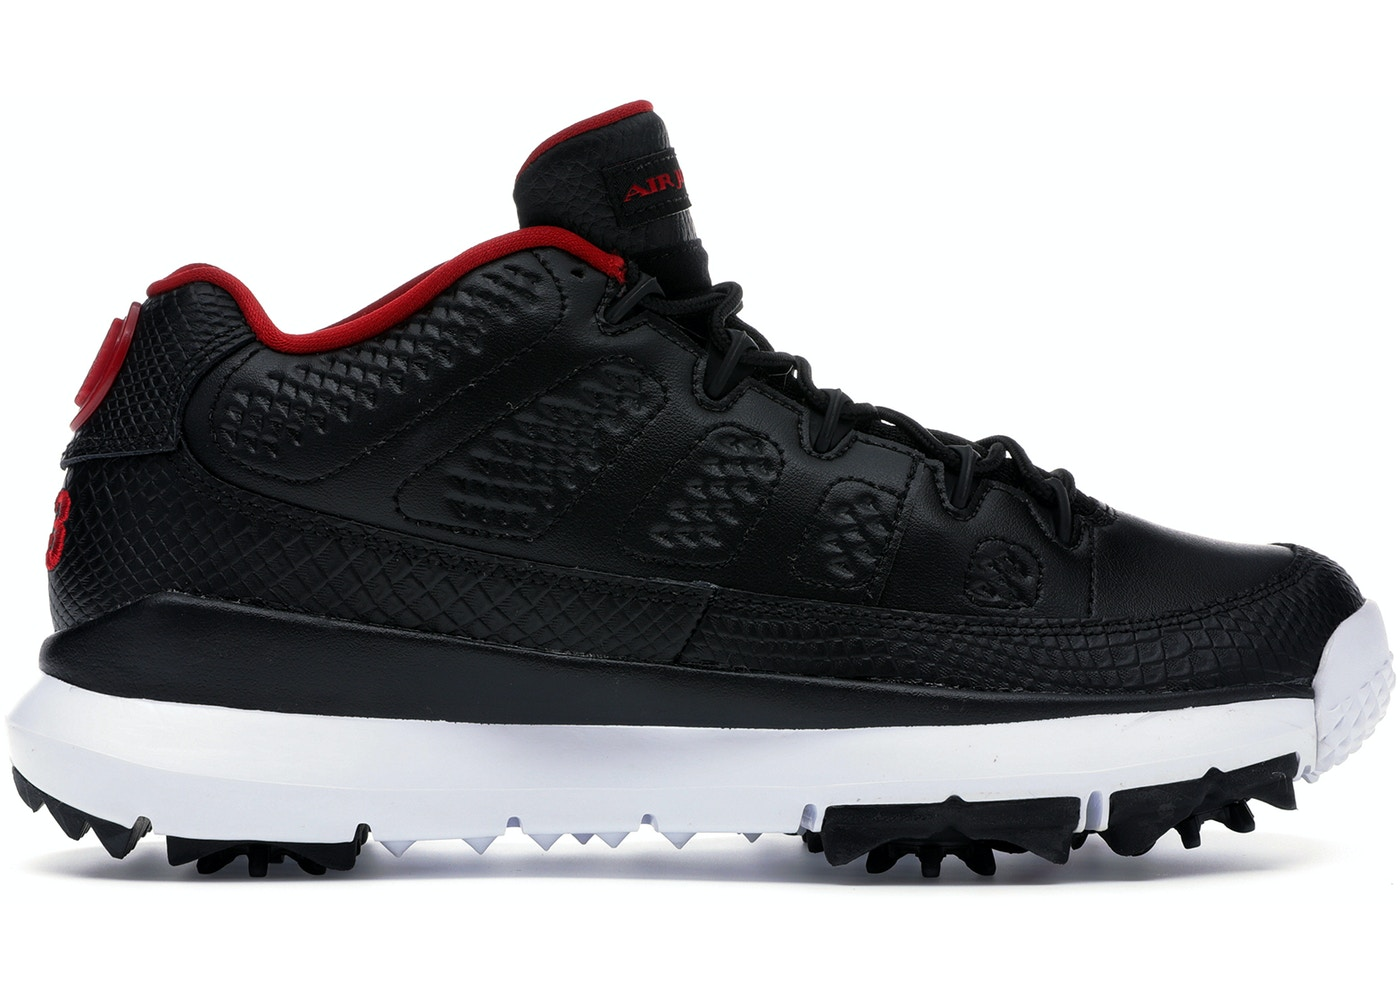 new product 68ee6 49657 Jordan 9 Retro Golf Cleat Bred - 833798-002